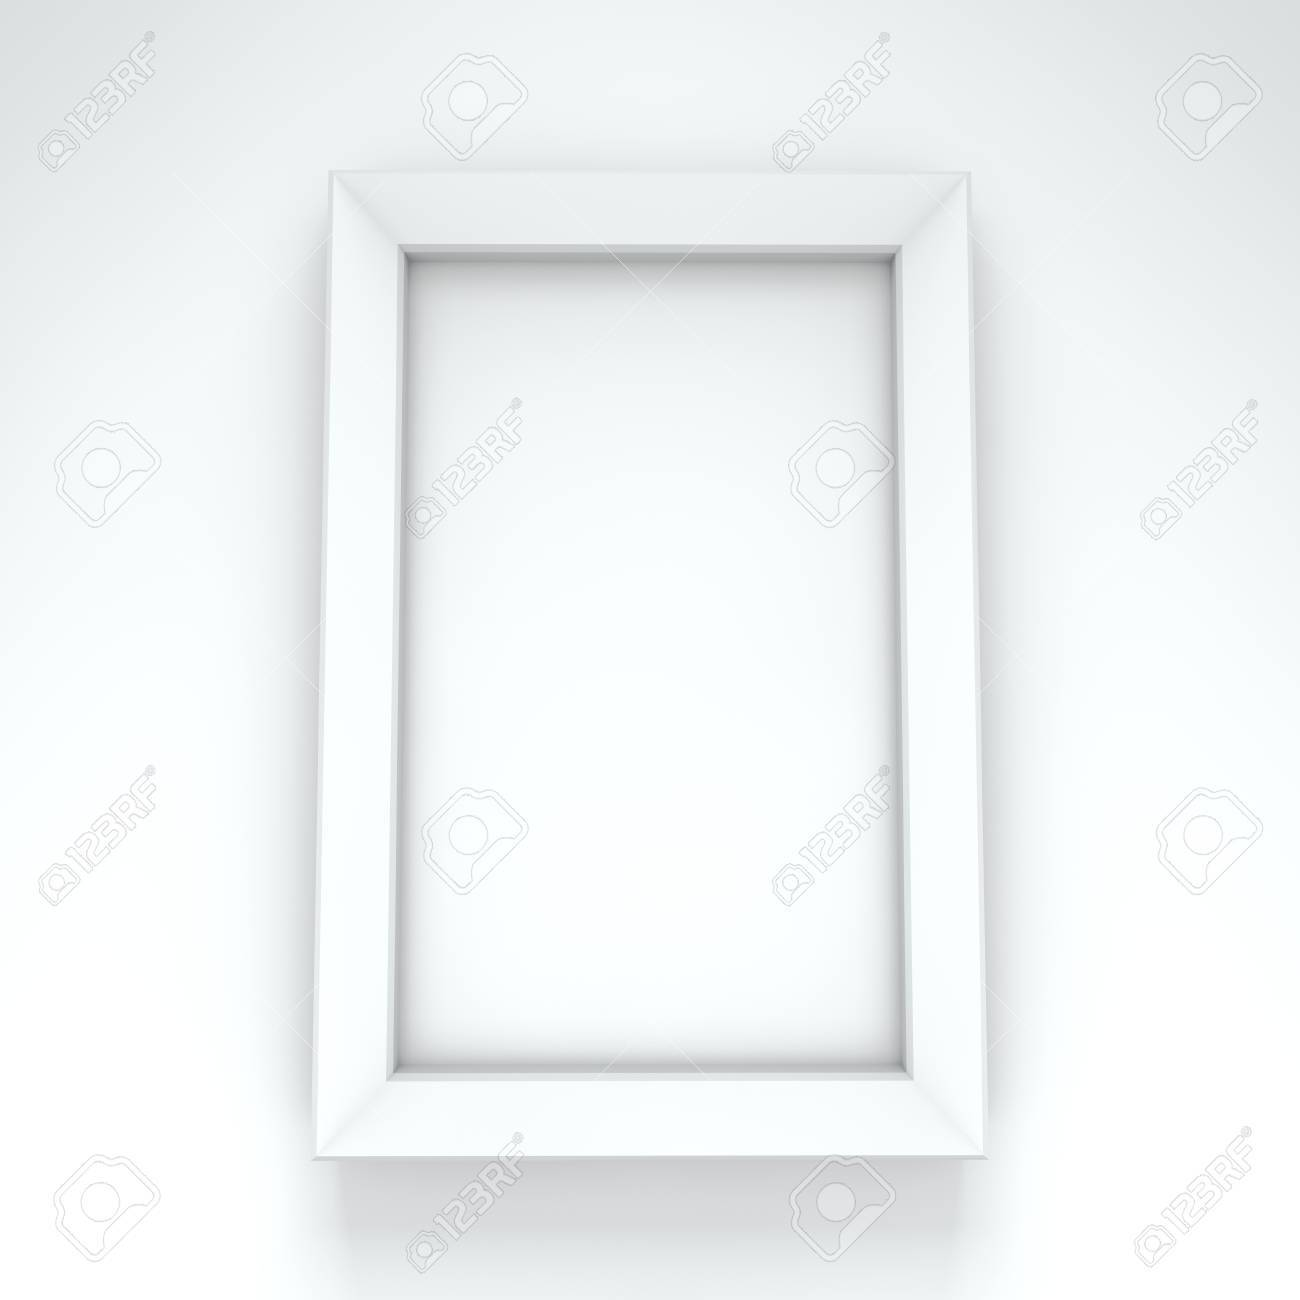 Blank White Frame Hanging On White Wall Stock Photo, Picture And ...